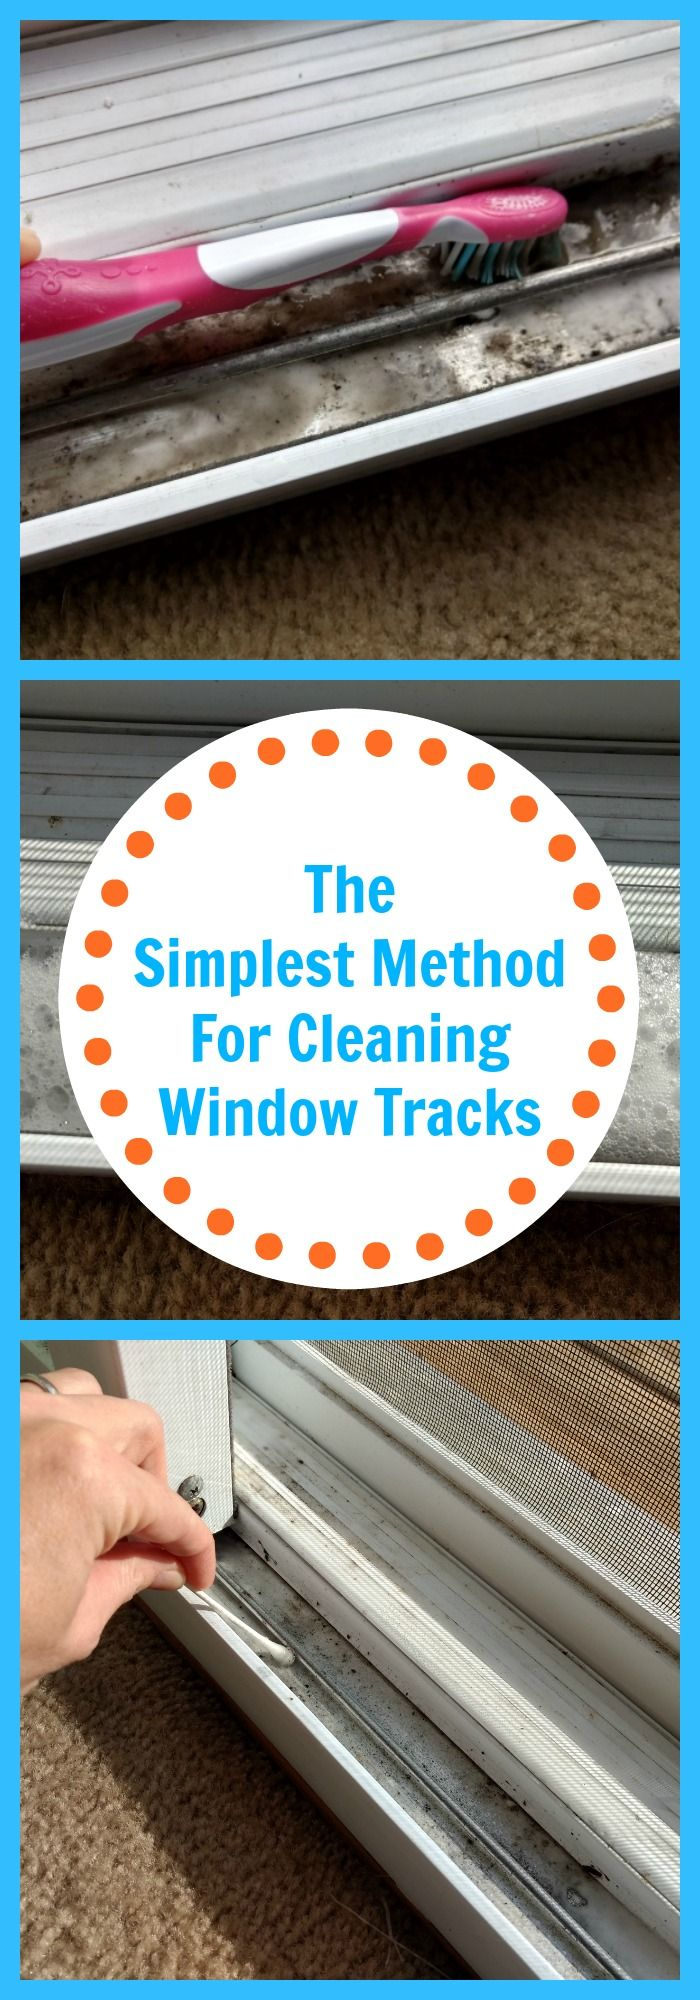 The Simplest Method For Cleaning Window Tracks